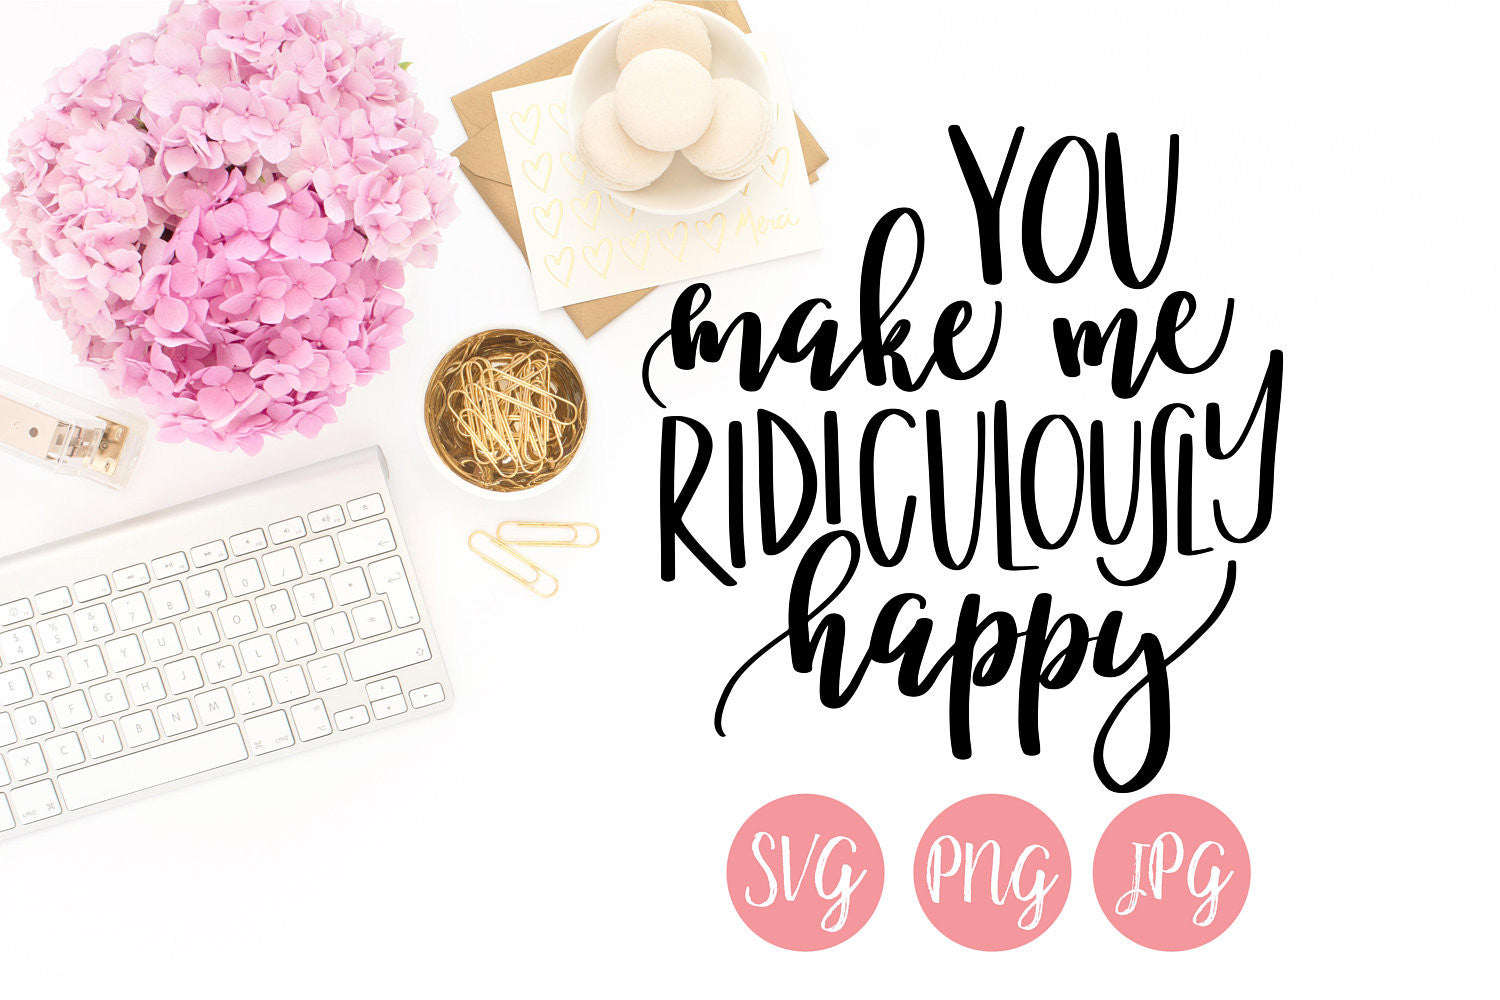 You Make Me Ridiculously Happy Hand Lettered SVG PNG JPEG - The Chaotically Creative Mom